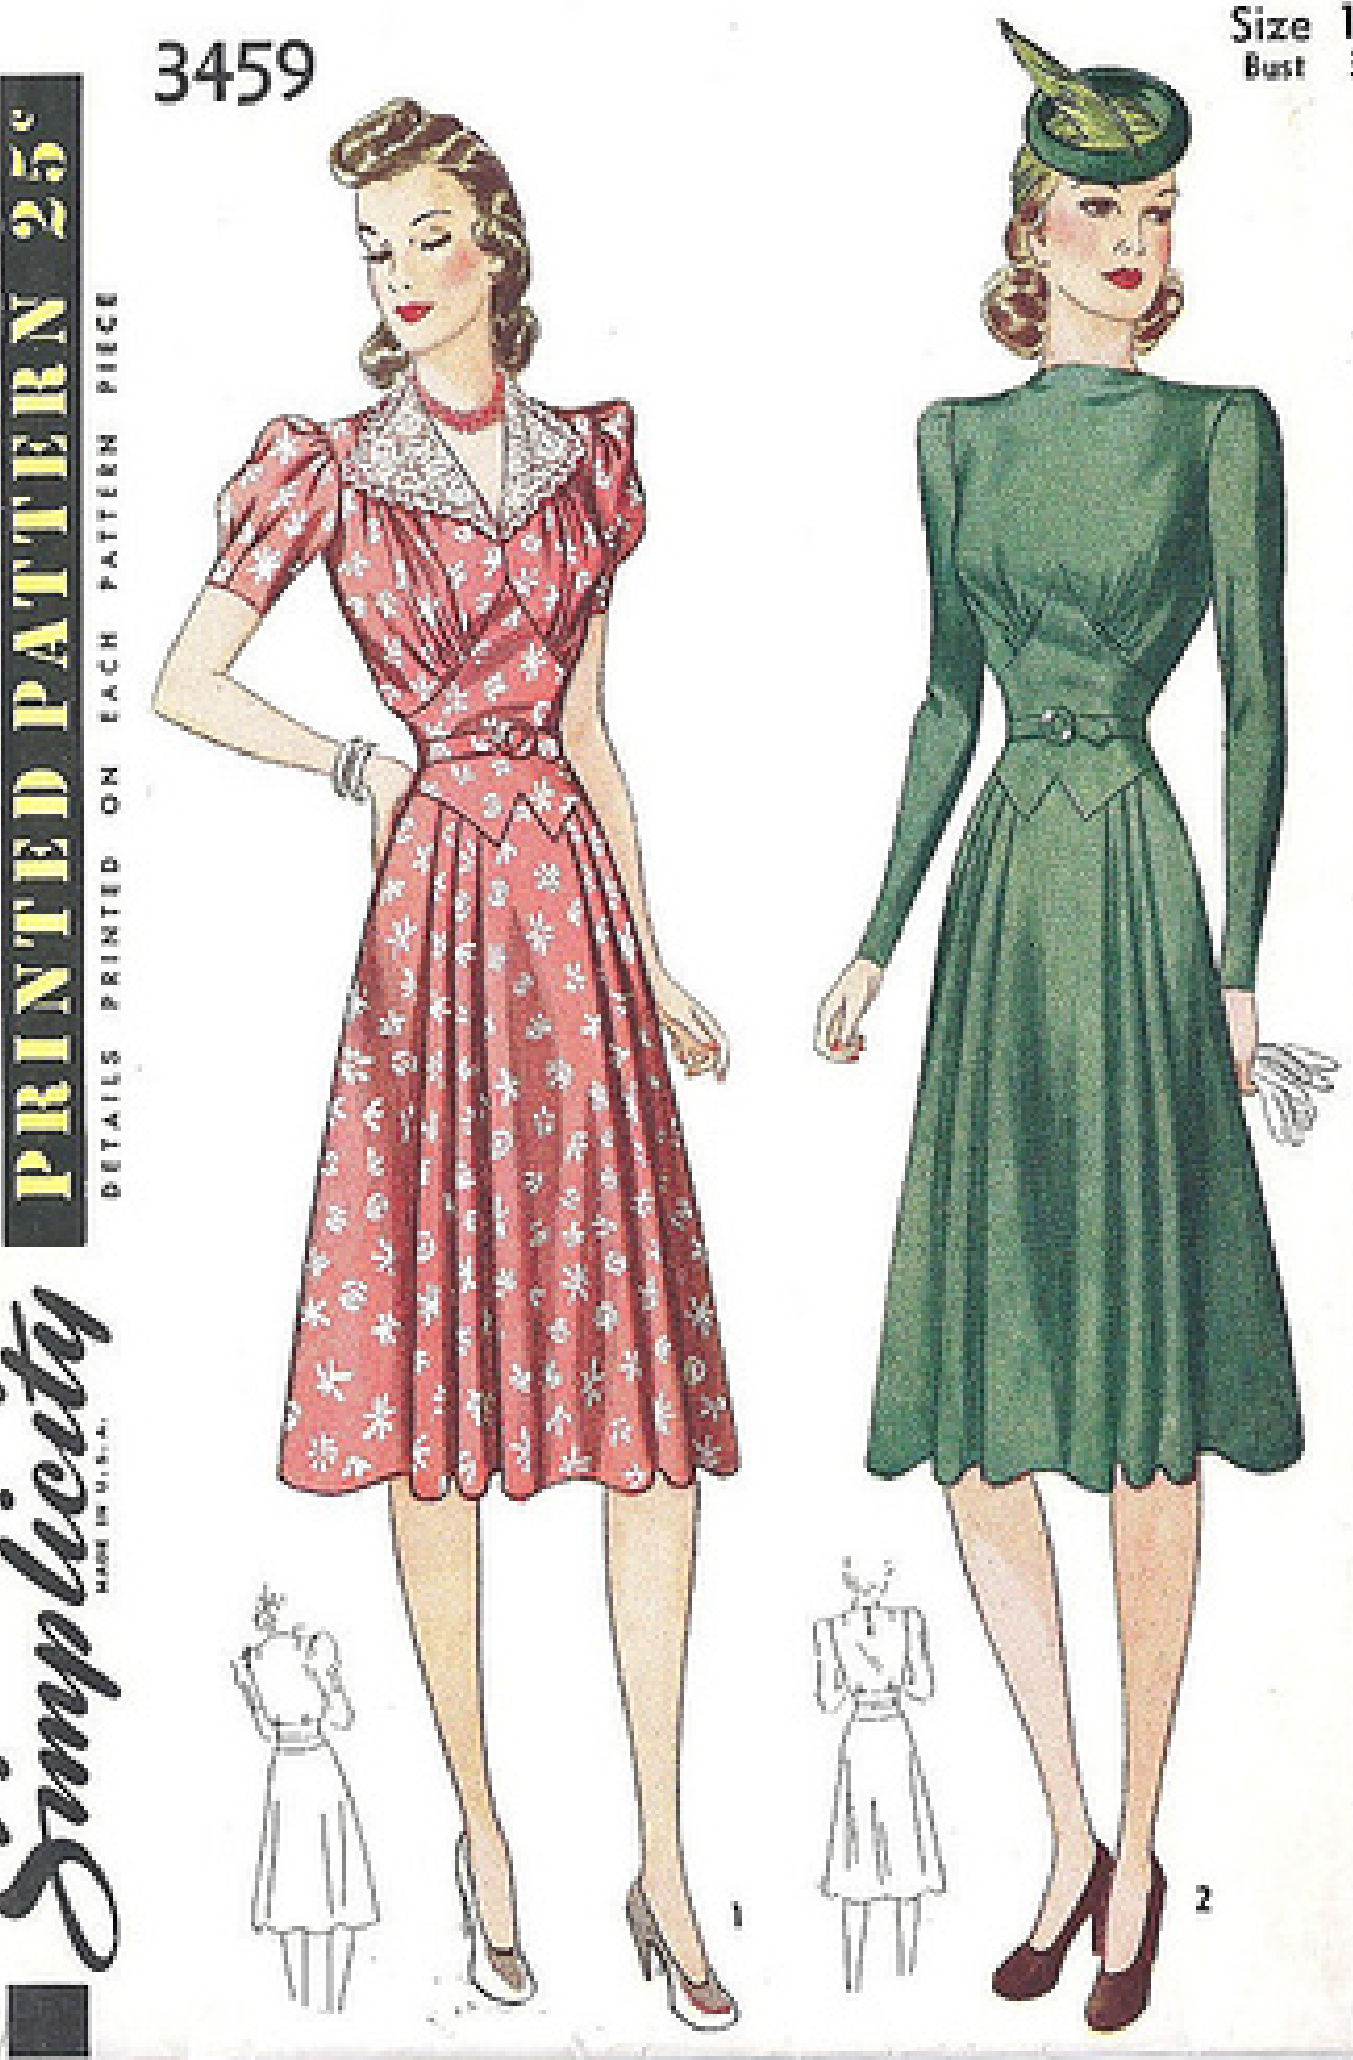 1940 dresses to buy